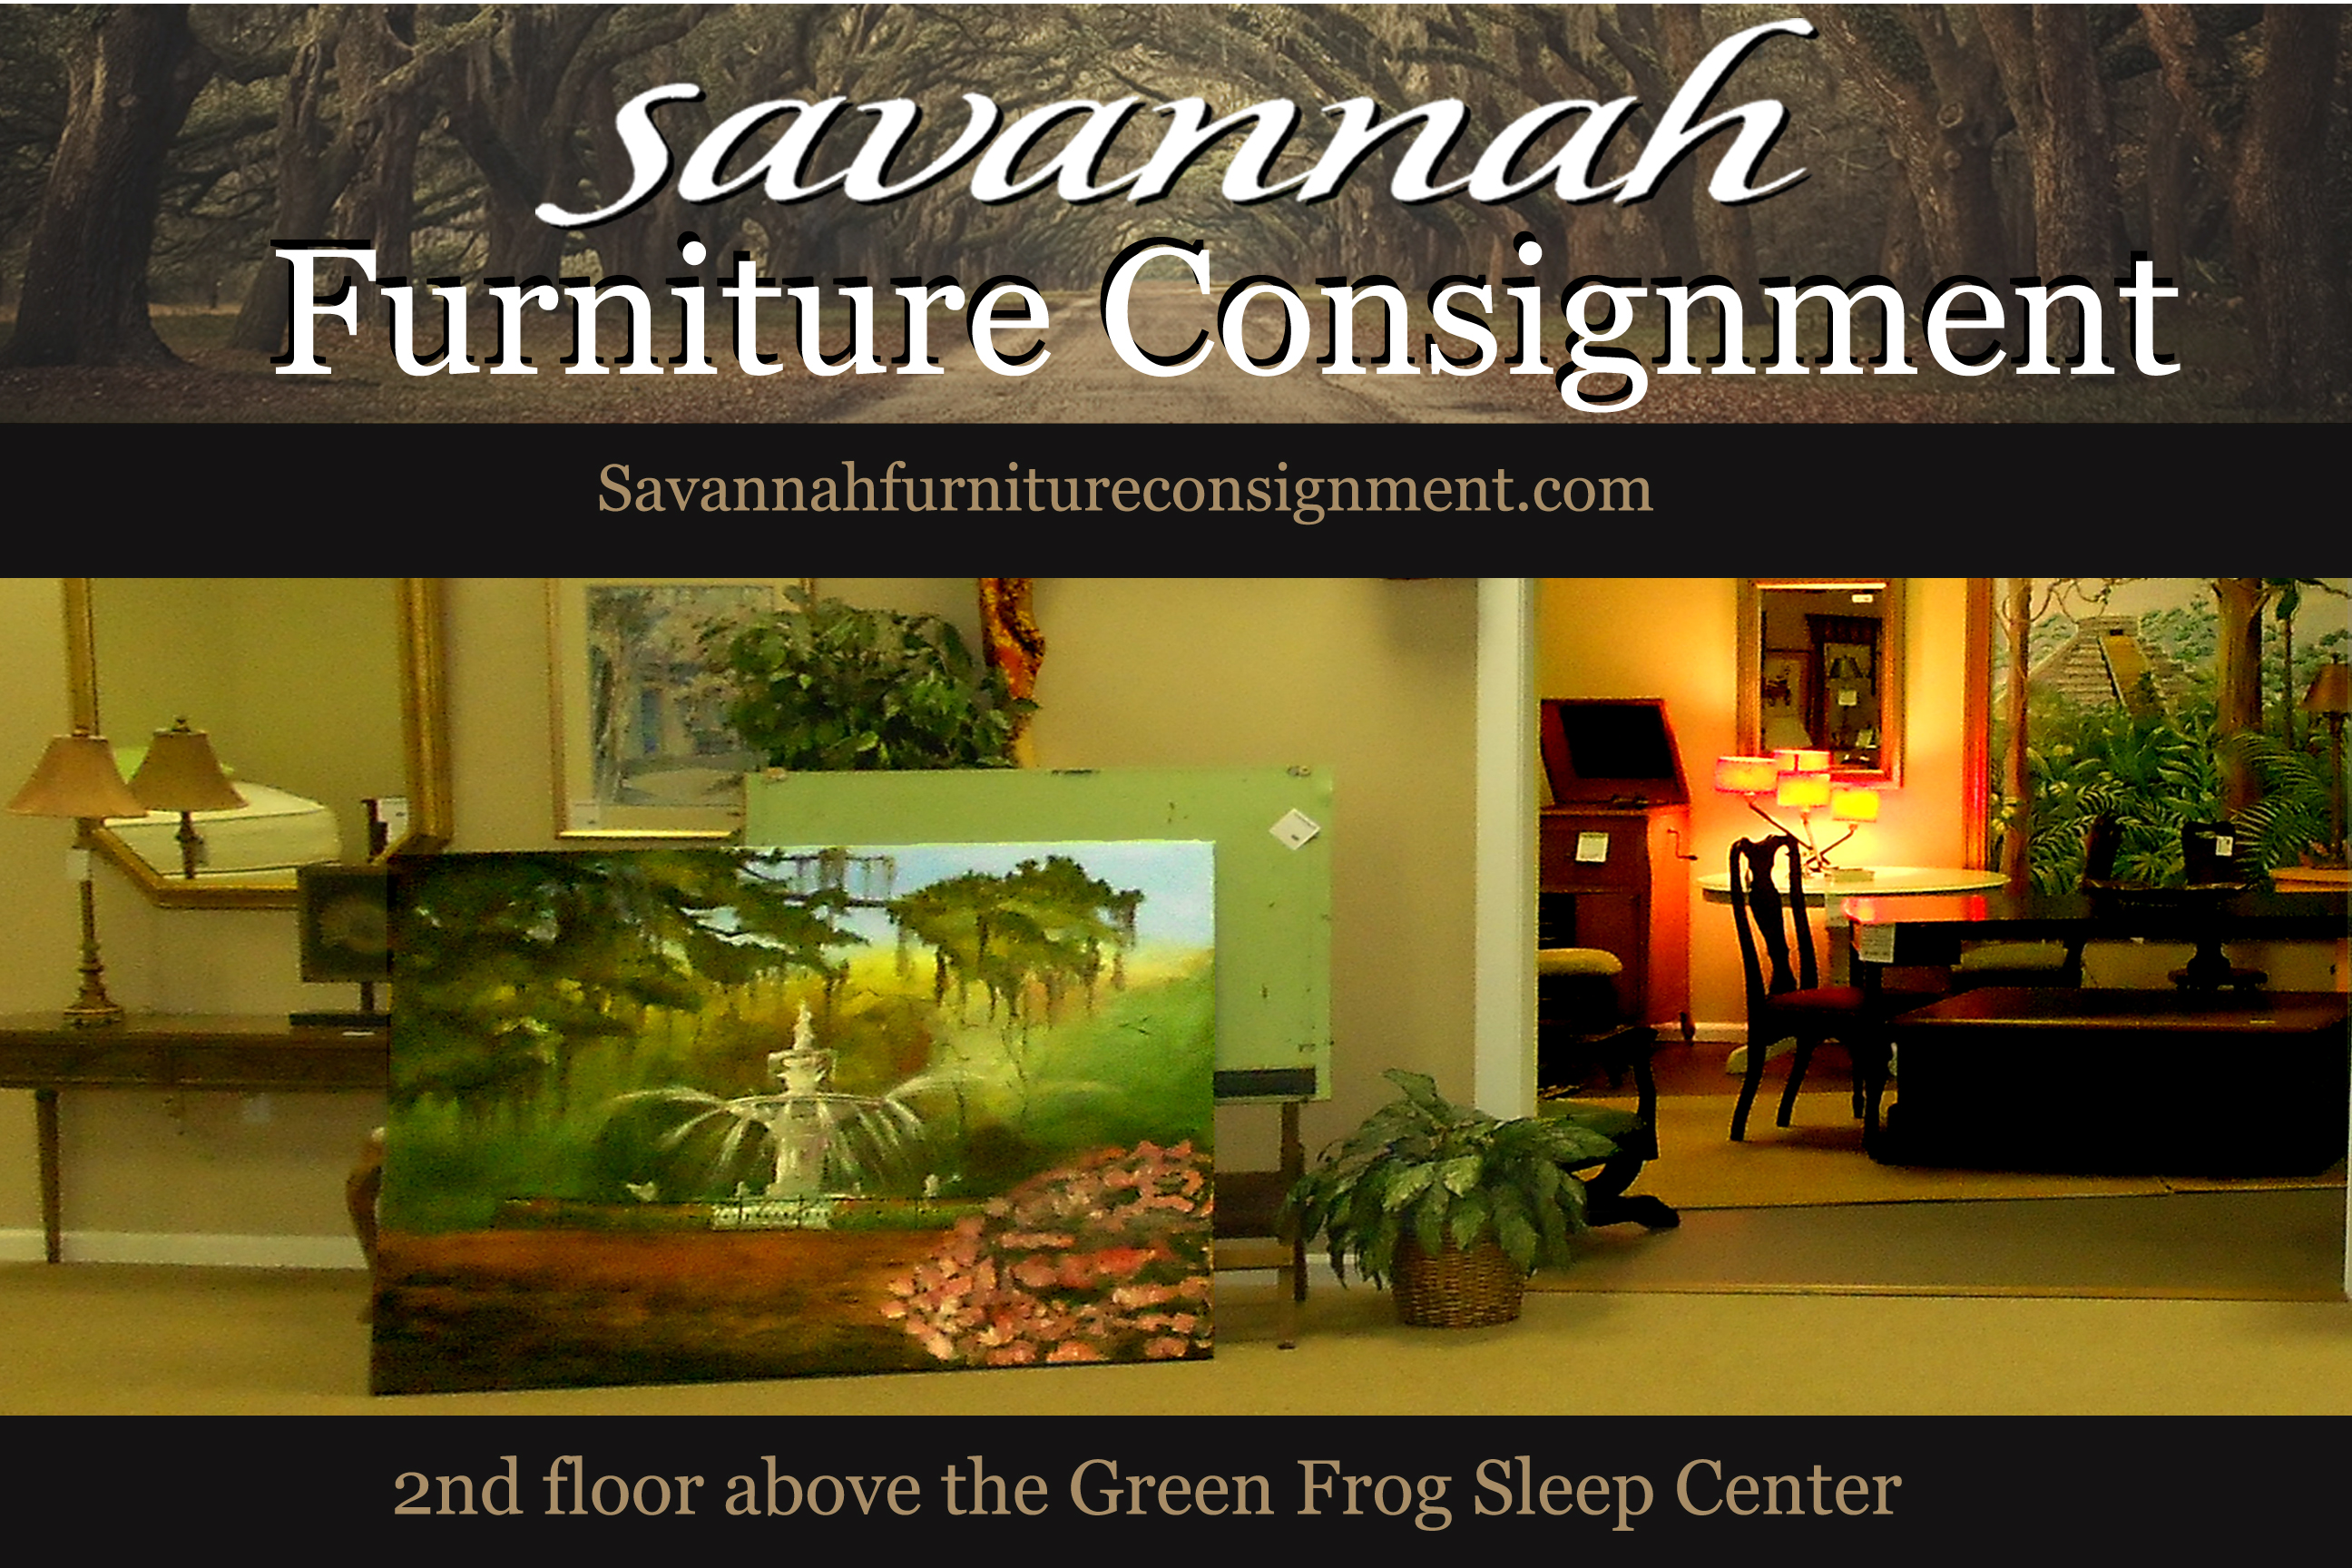 Discover Brand Names And Save Money On Furniture In Savannah With Discount  Prices.